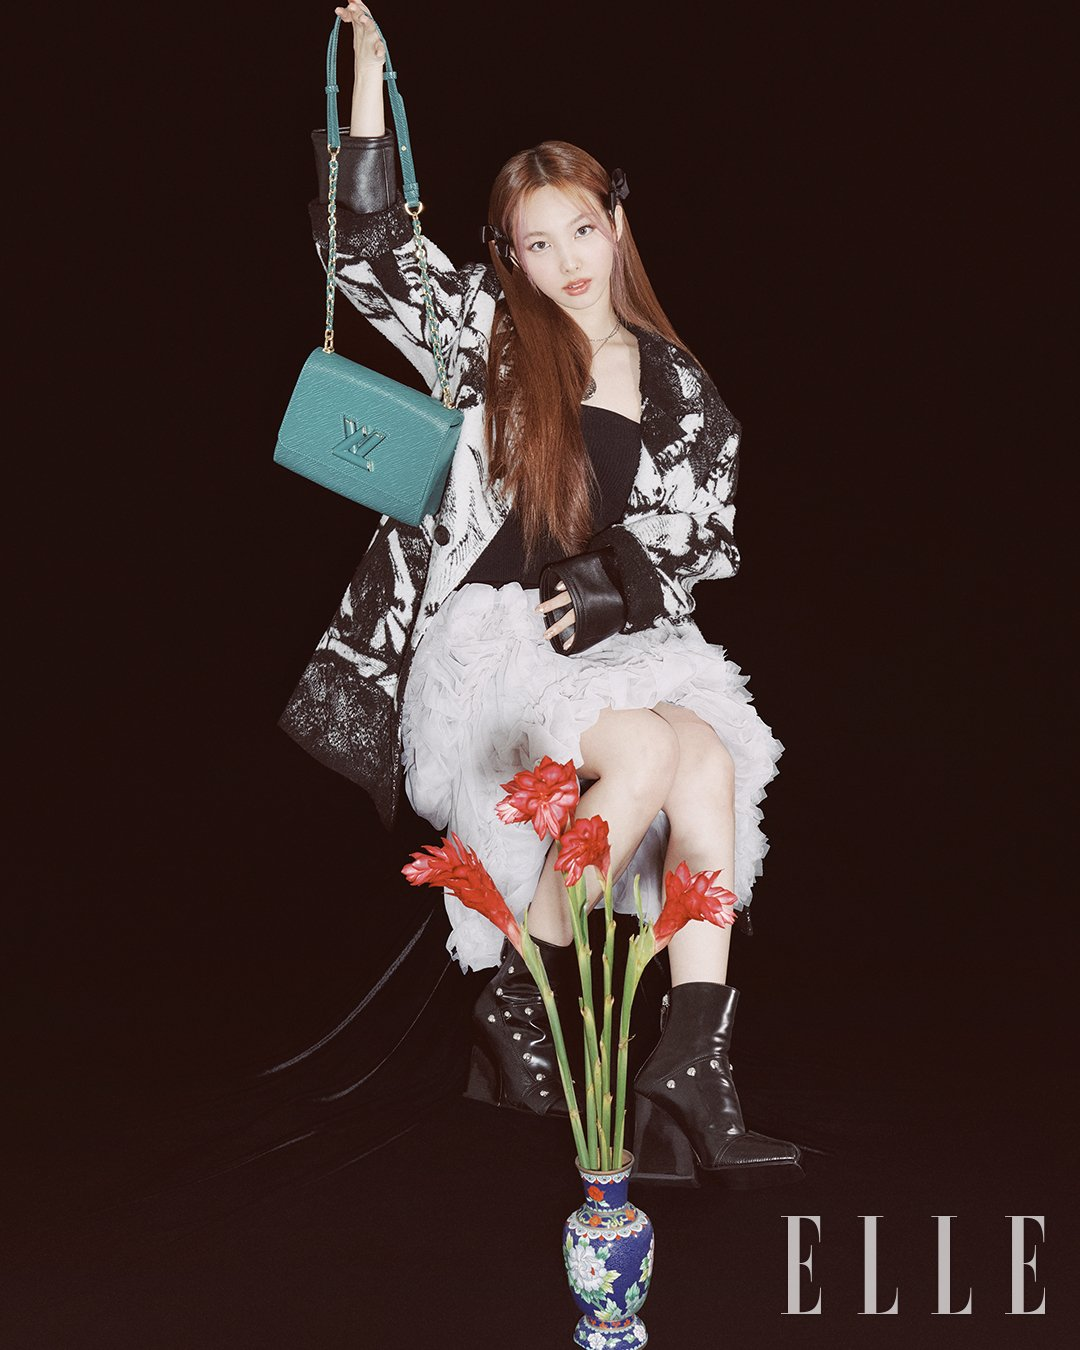 TWICE Nayeon, lovely pictorial